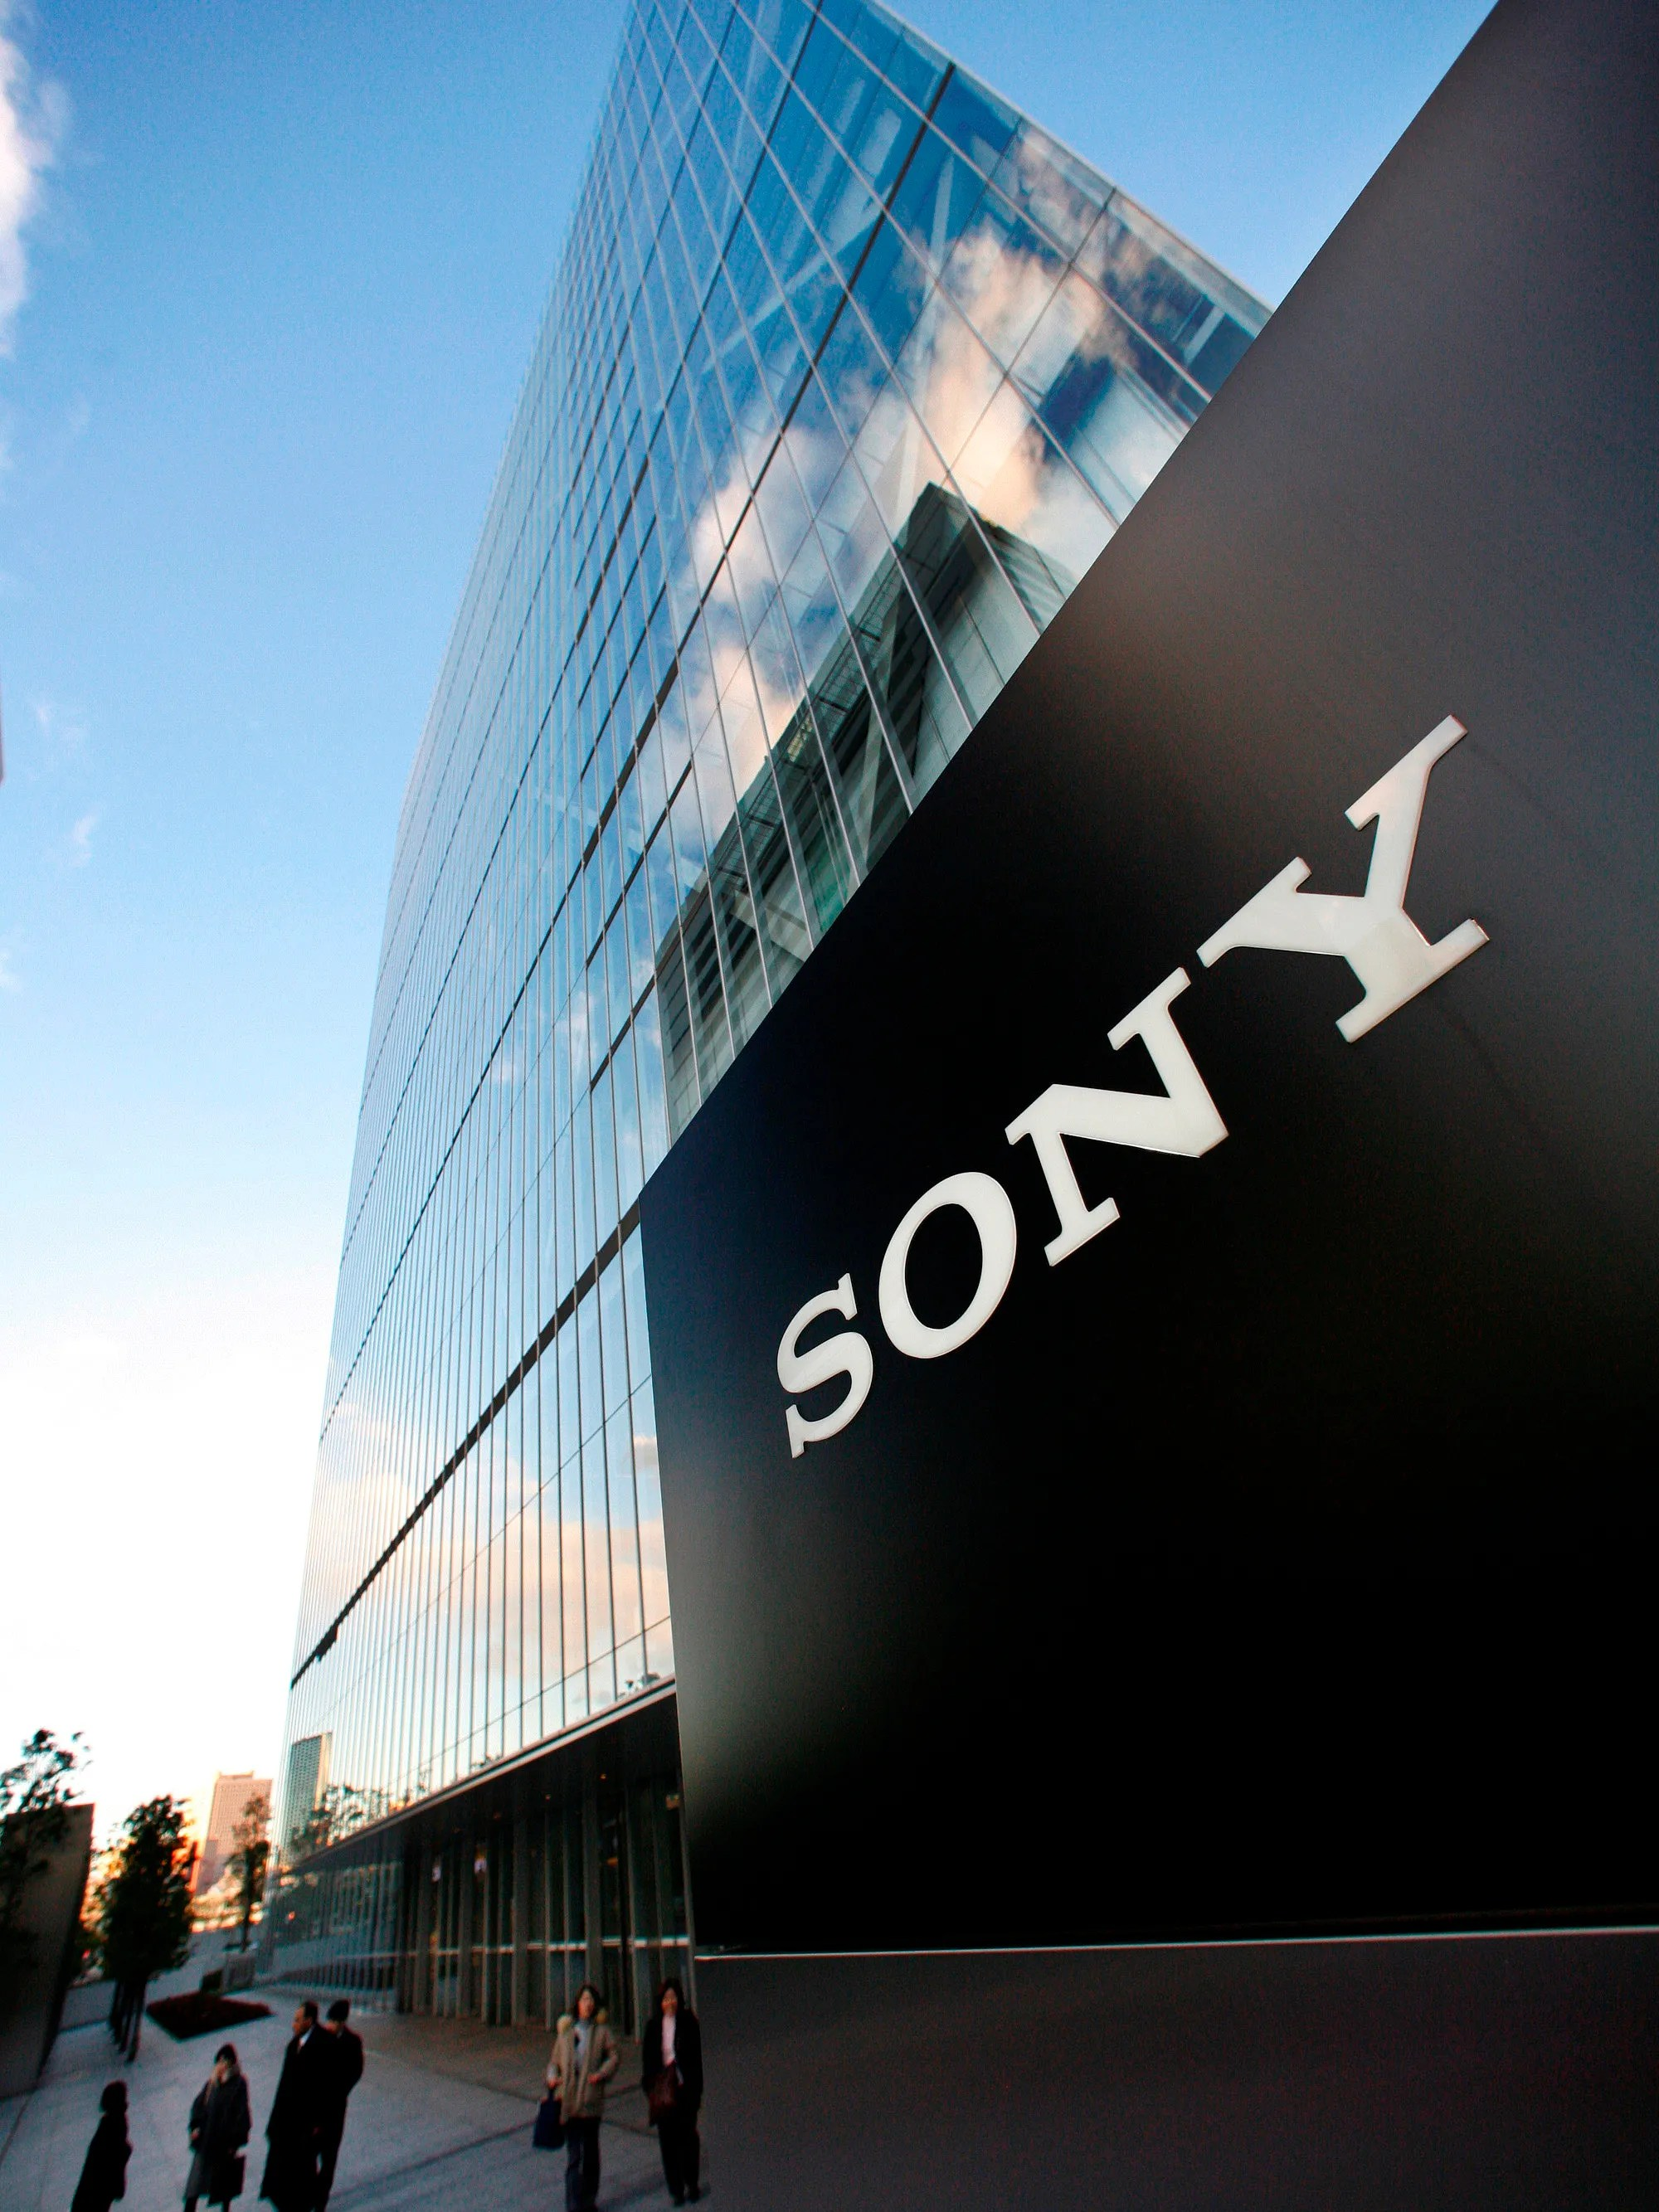 Sony Launching Company To Make Smartphone Games